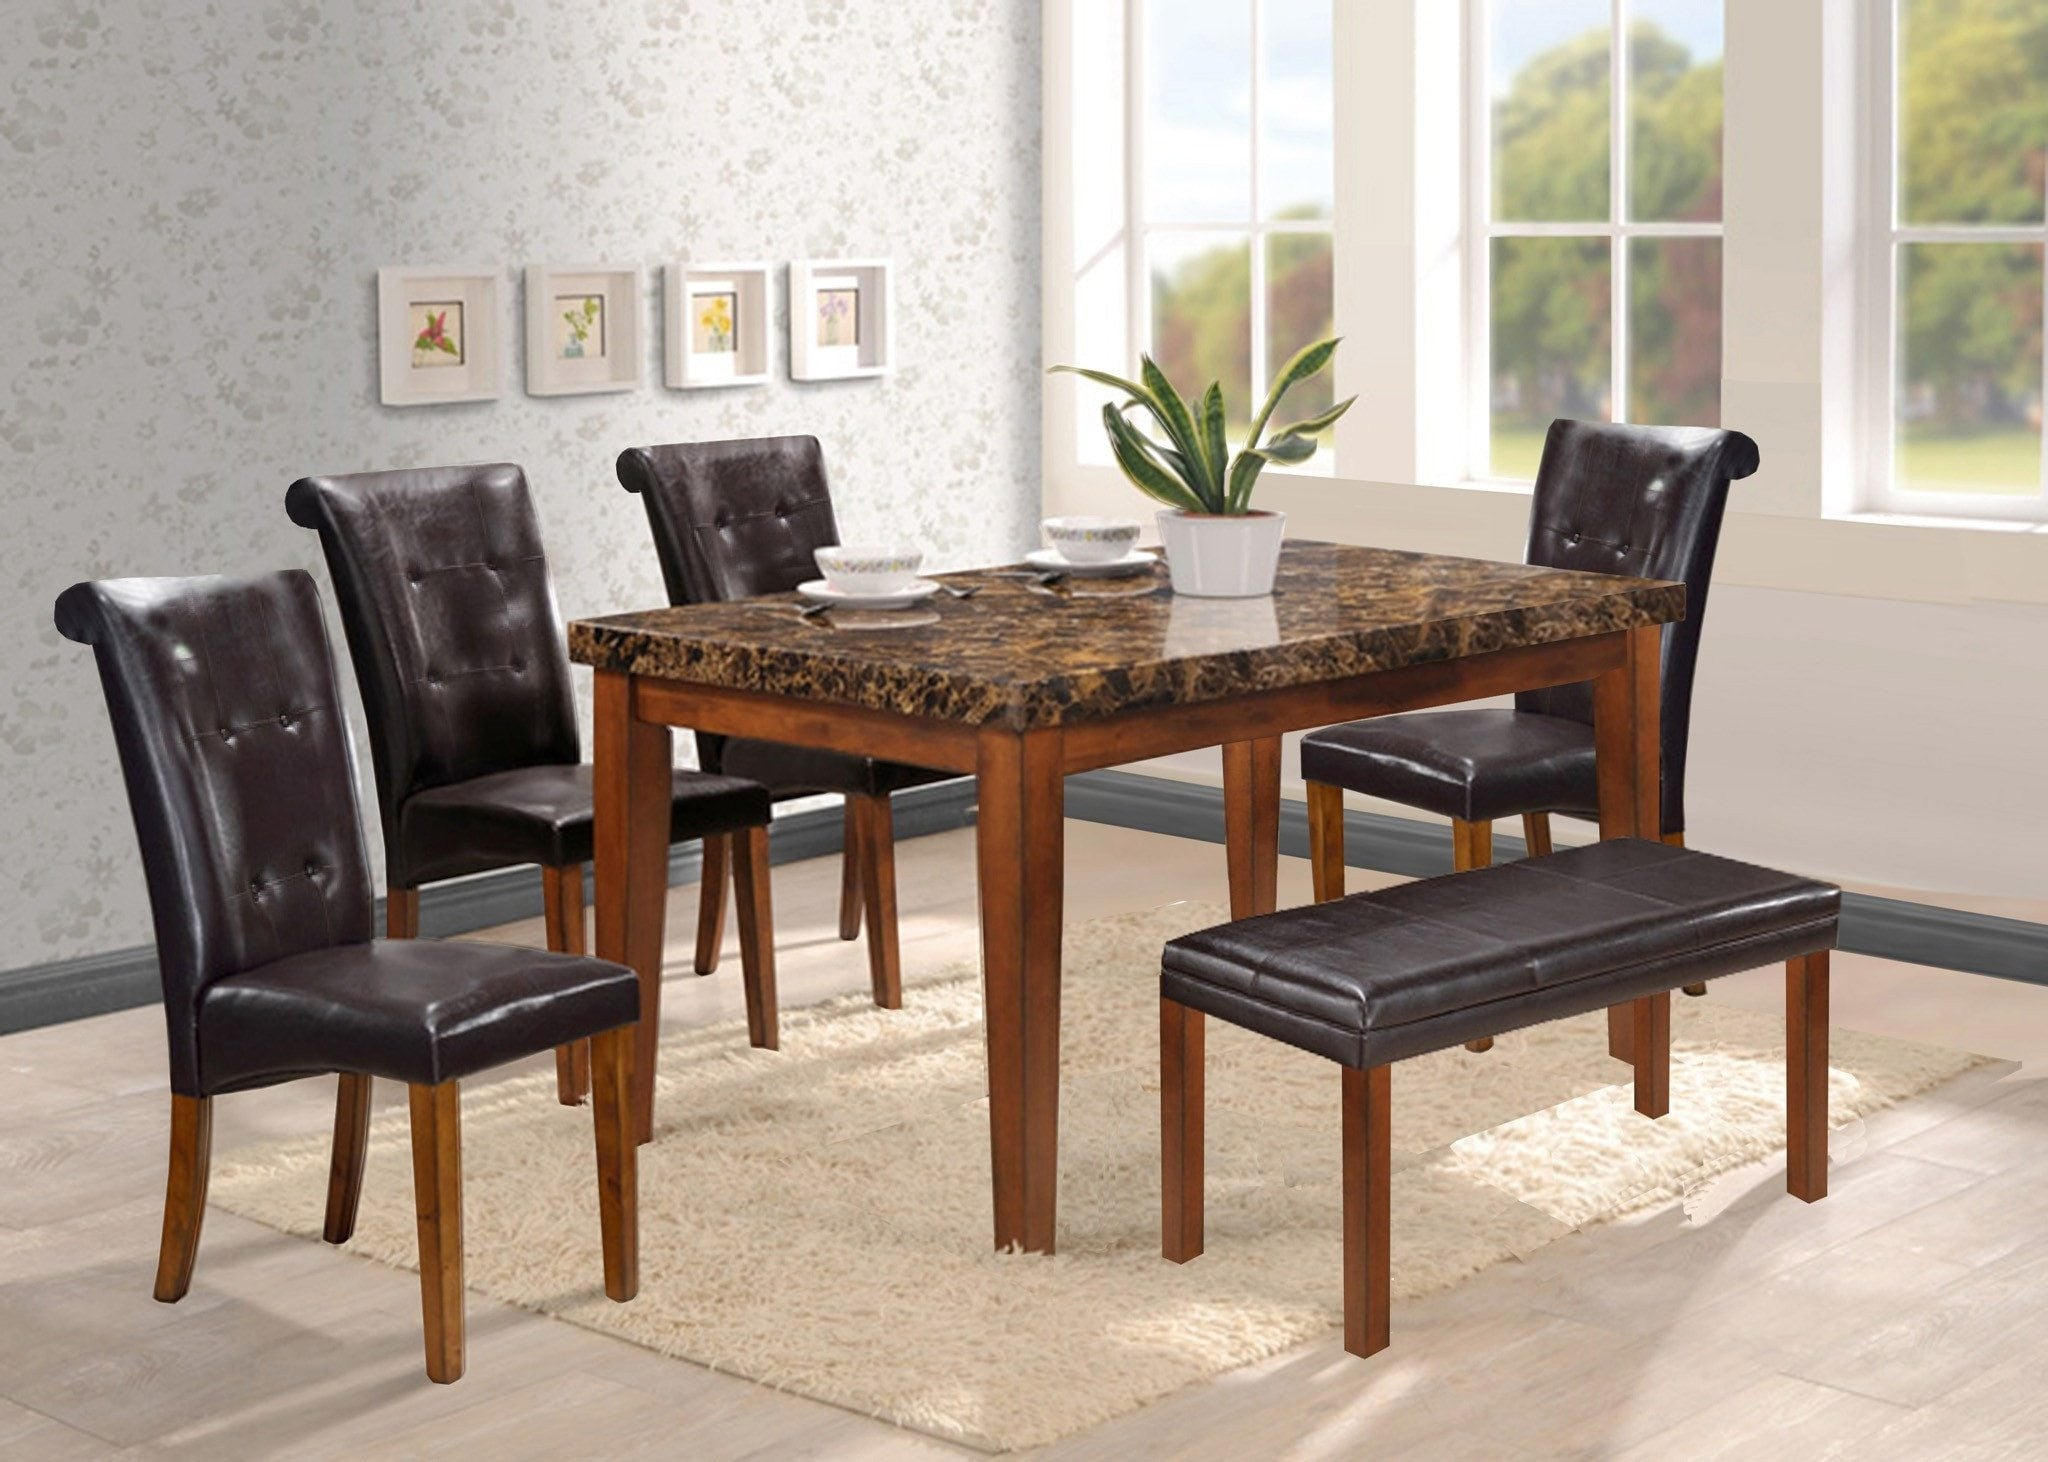 Marvelous Dining Table W Bench Set 6 Pcs Set Ibusinesslaw Wood Chair Design Ideas Ibusinesslaworg